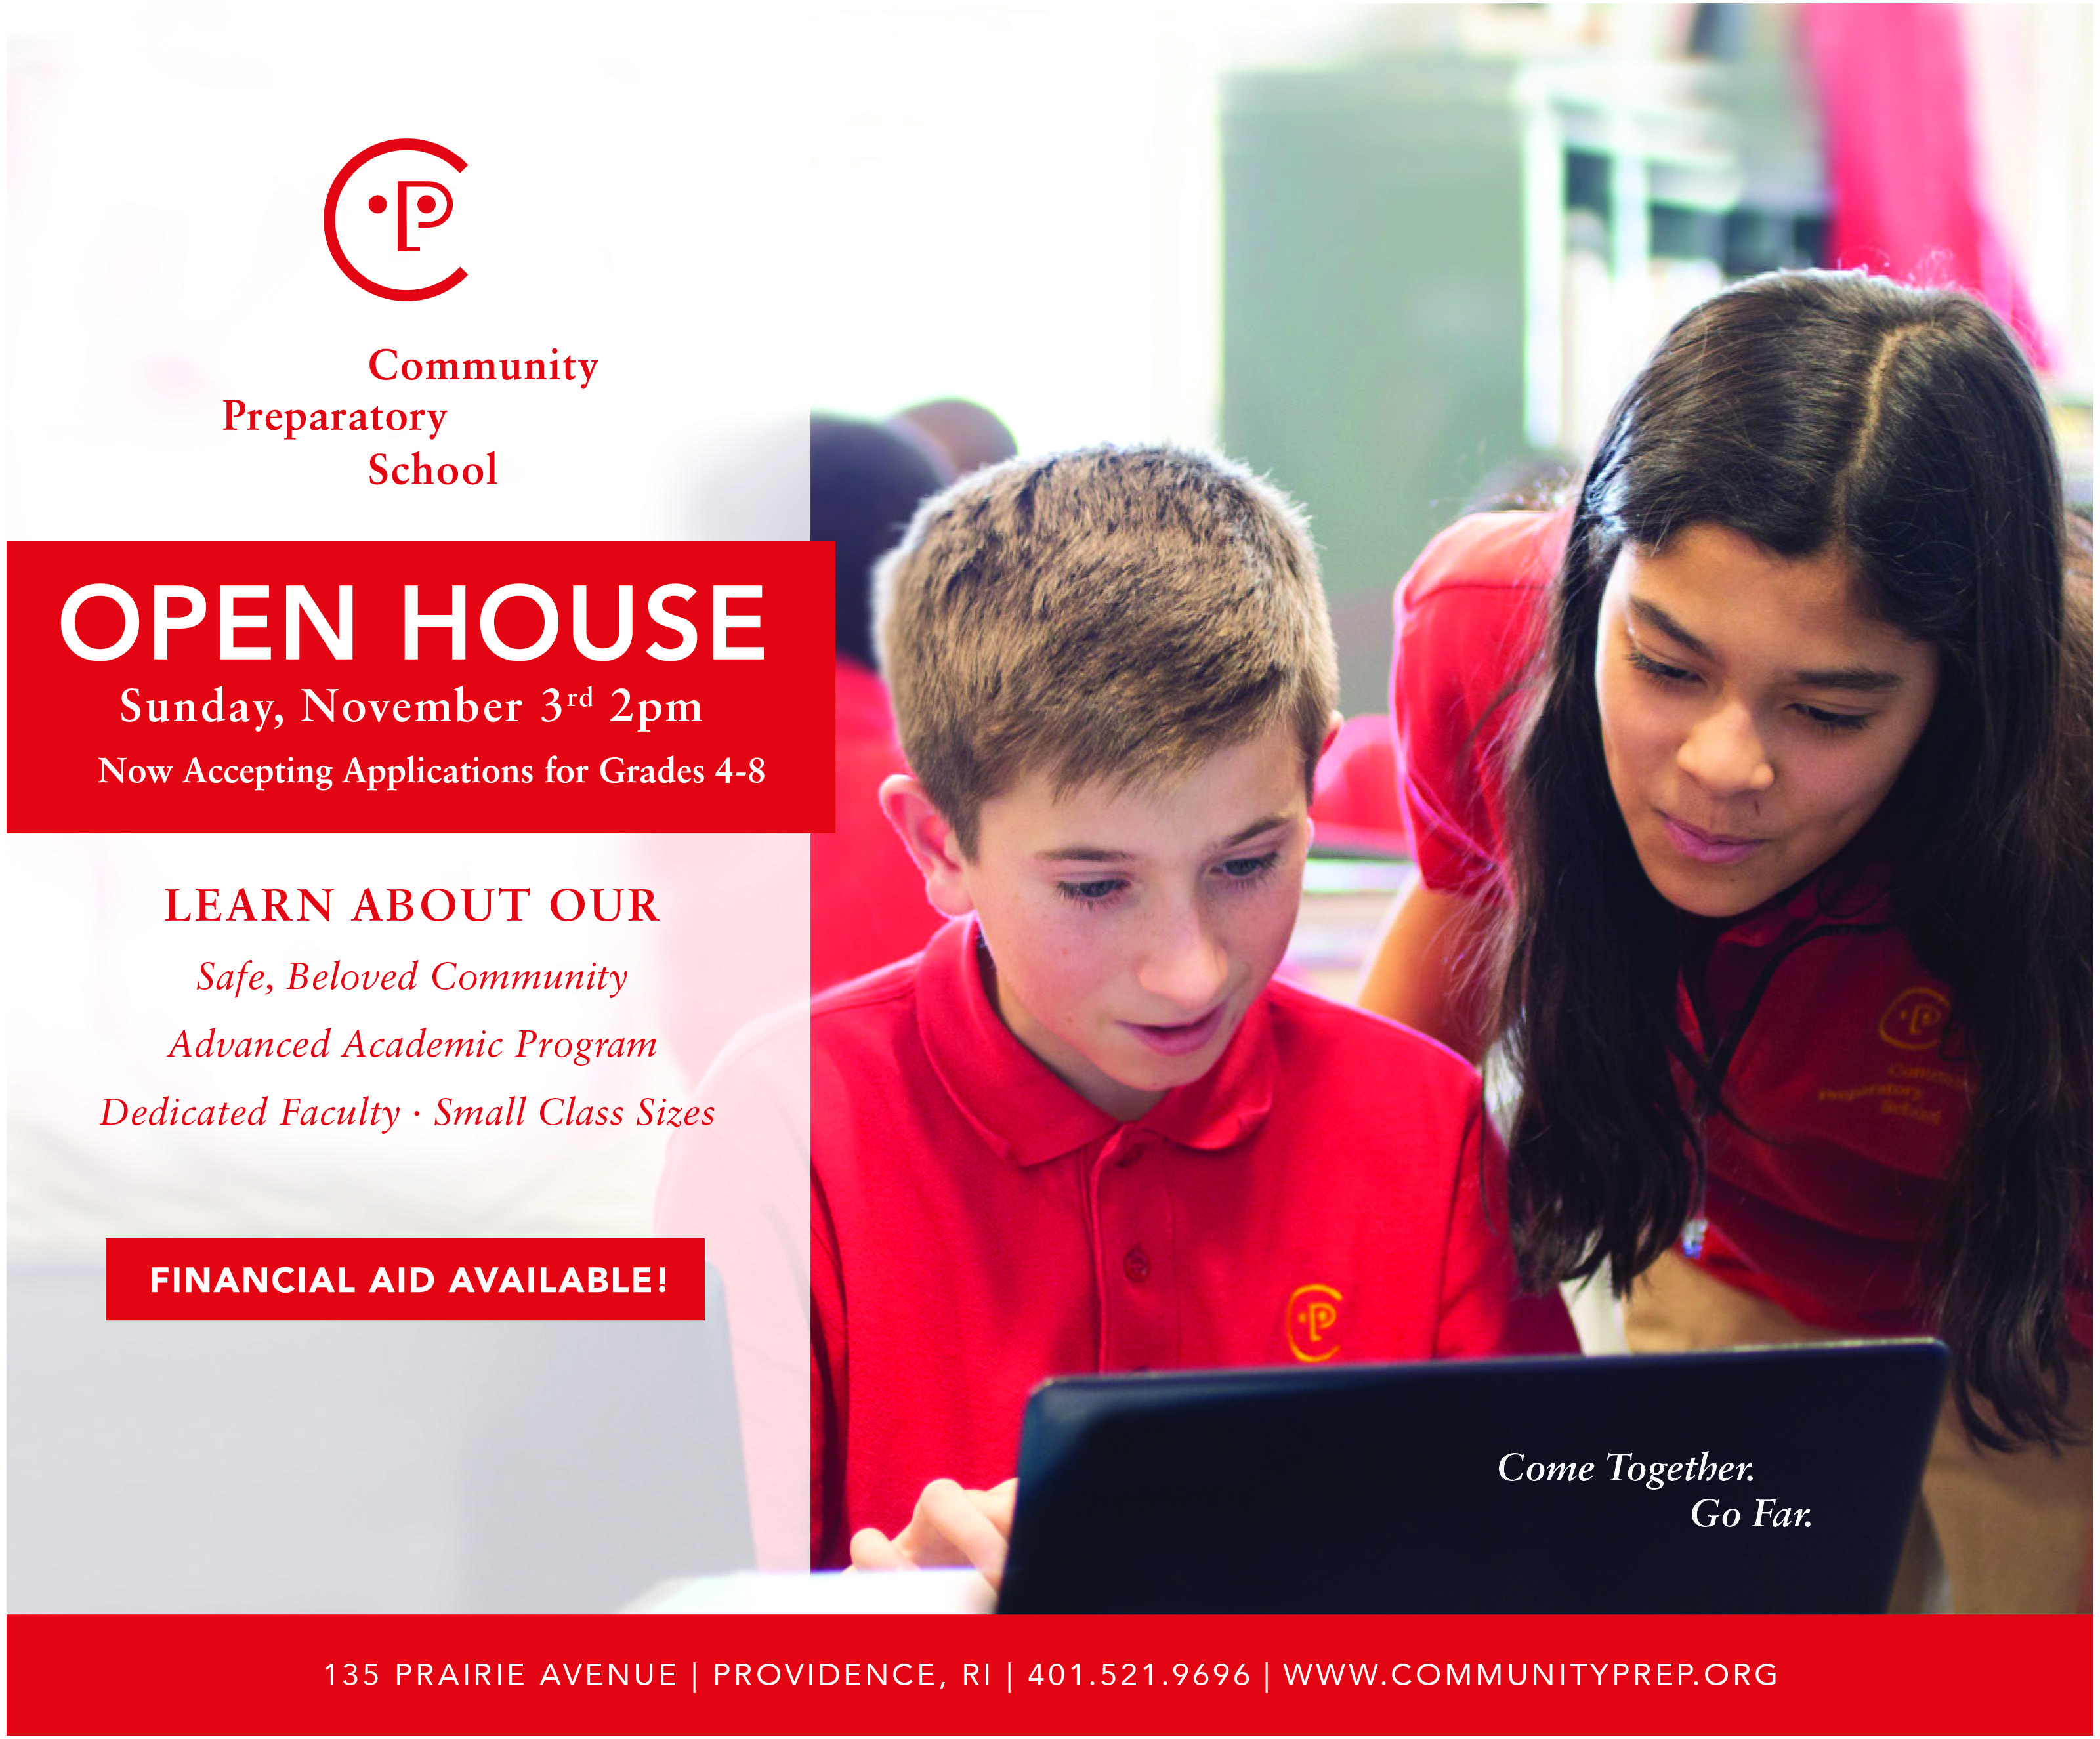 open house image 2019